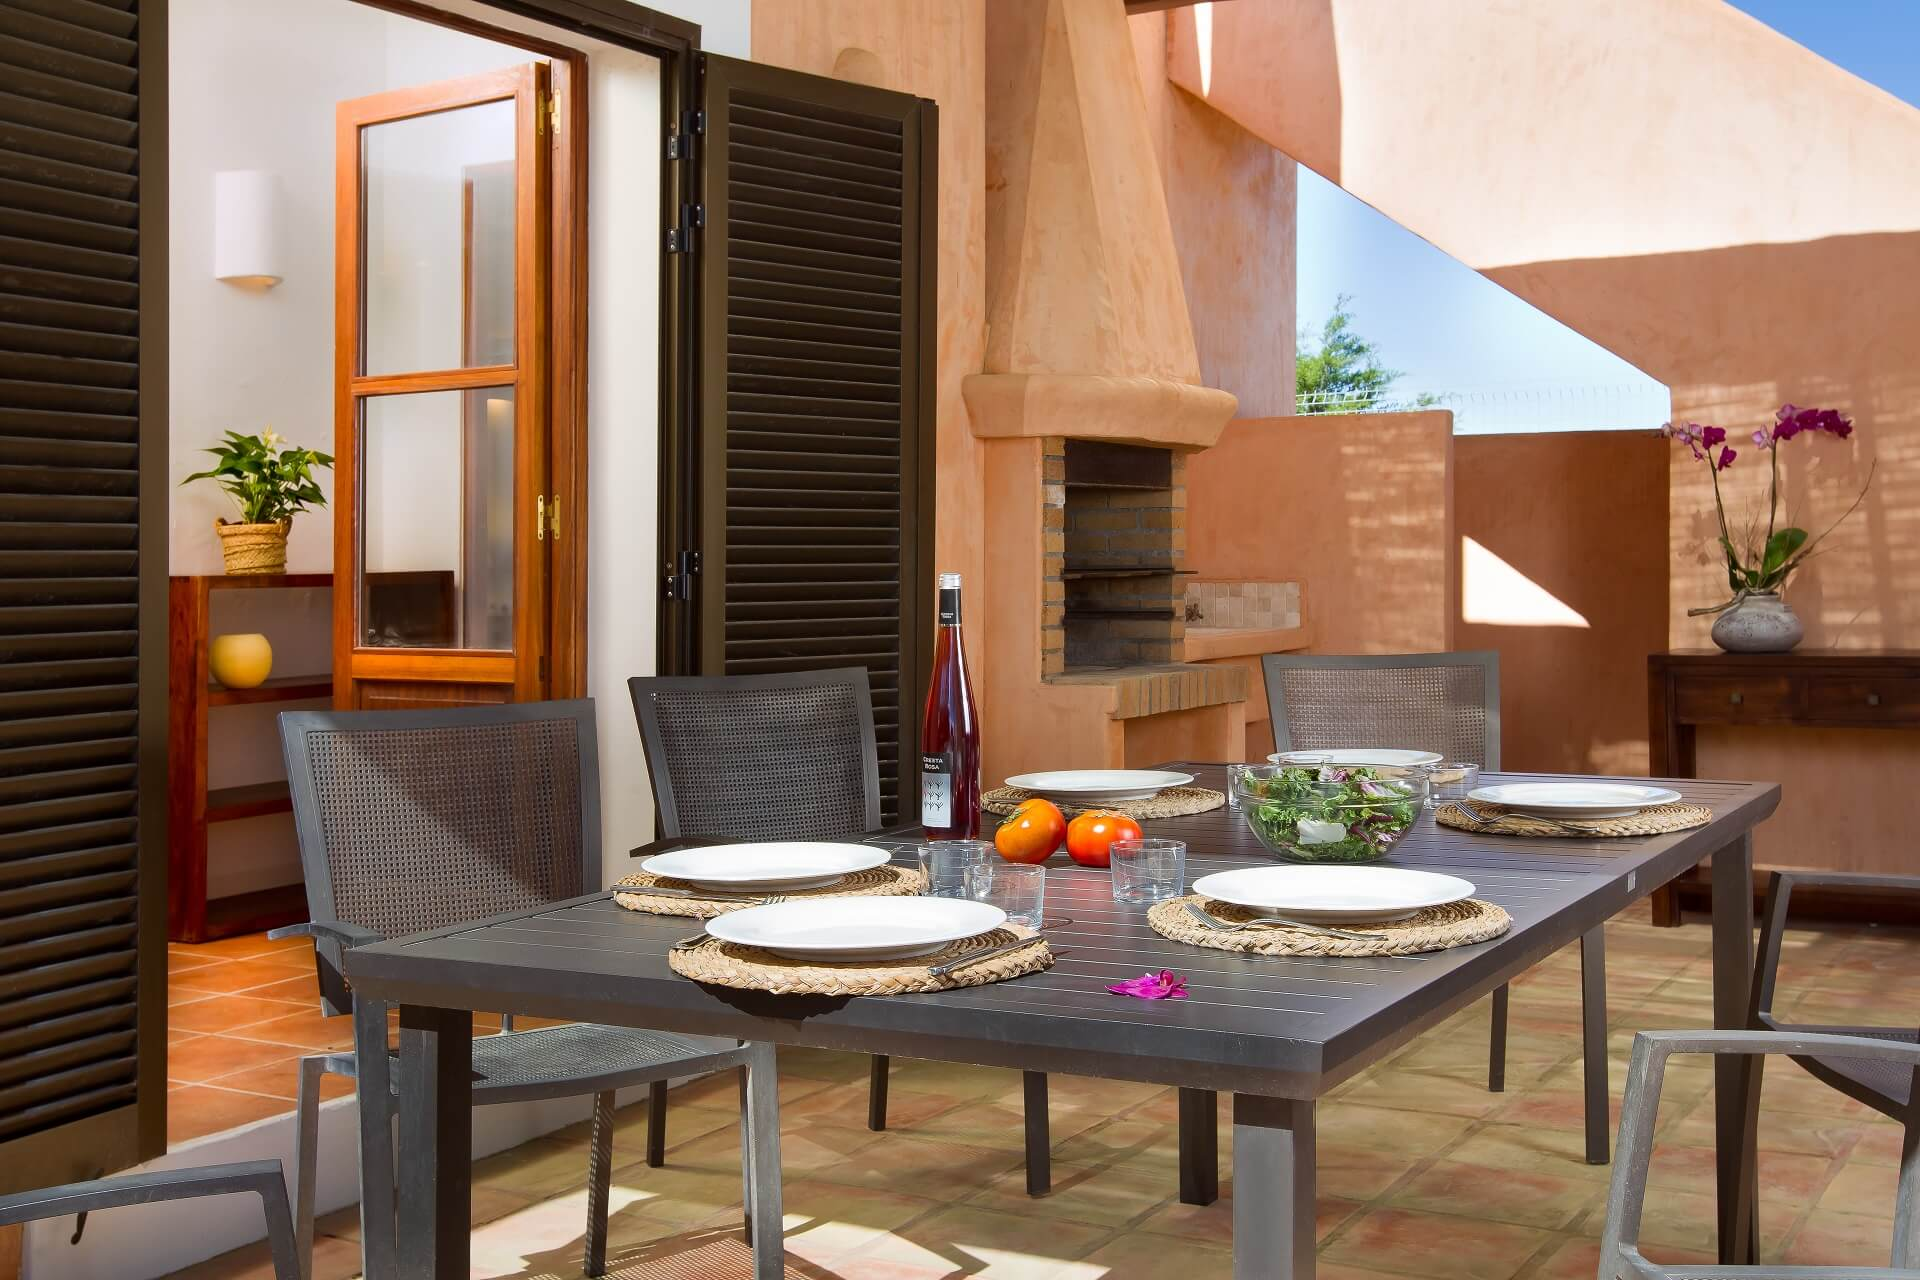 Viila CASES N3 - Porch with BBQ